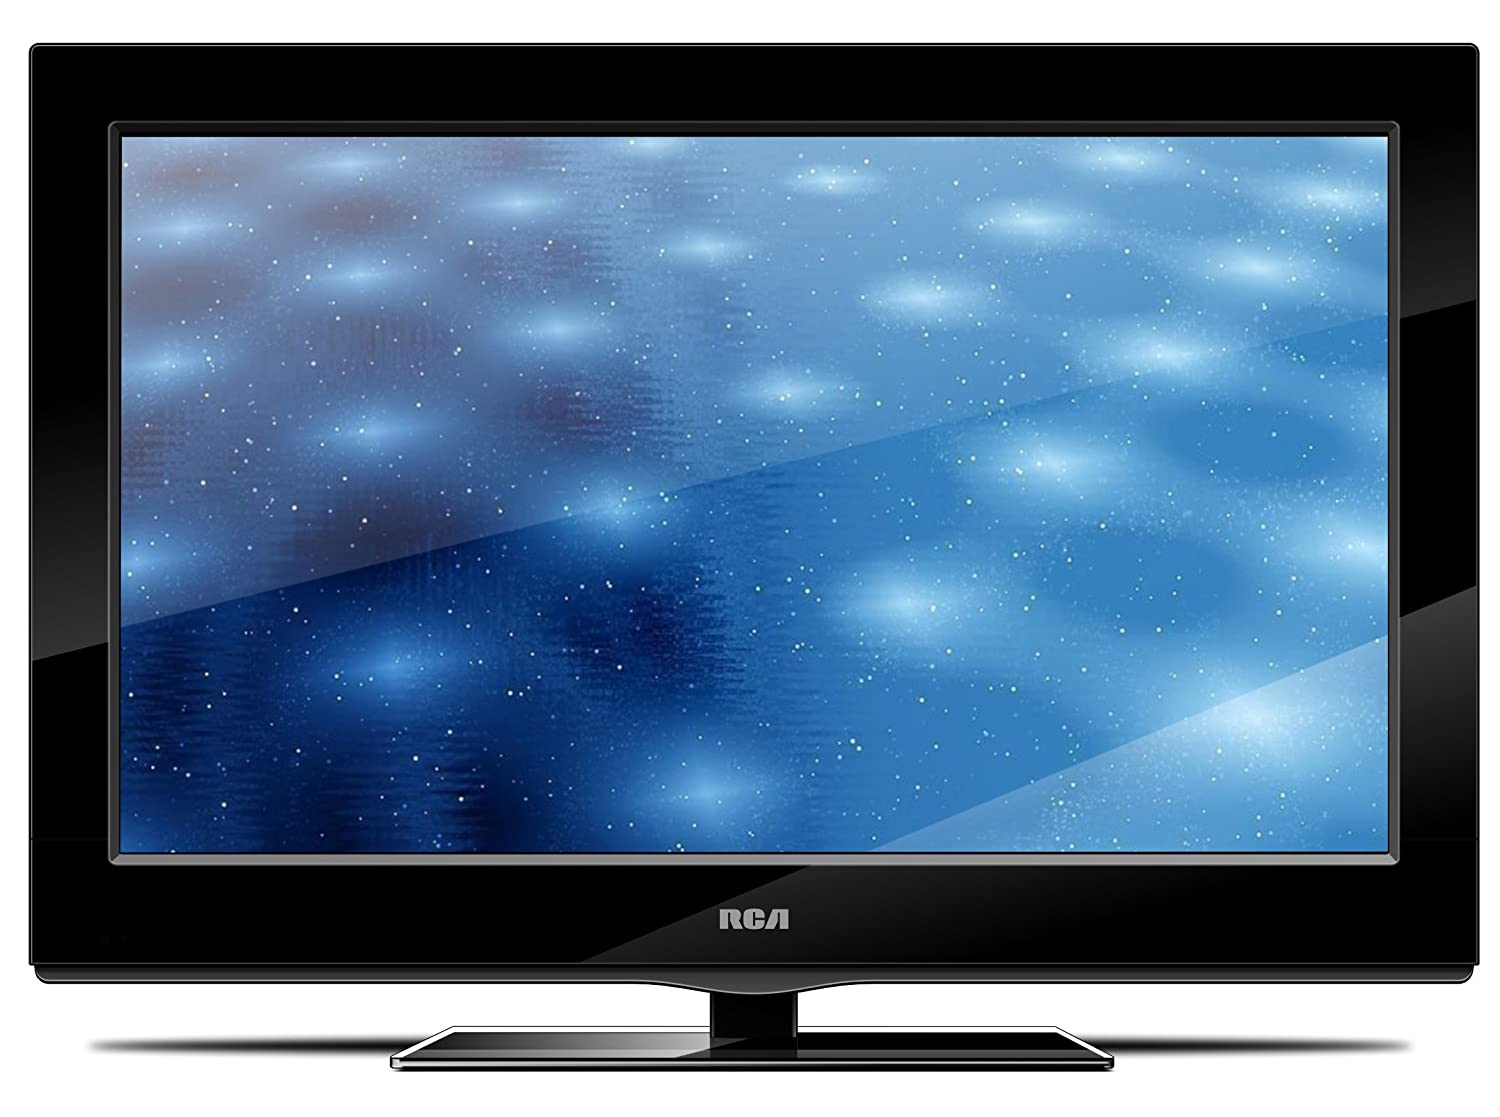 item rca 19lb30rqd 19 inch lcd 720p 60hz tv black condition brand new. Black Bedroom Furniture Sets. Home Design Ideas